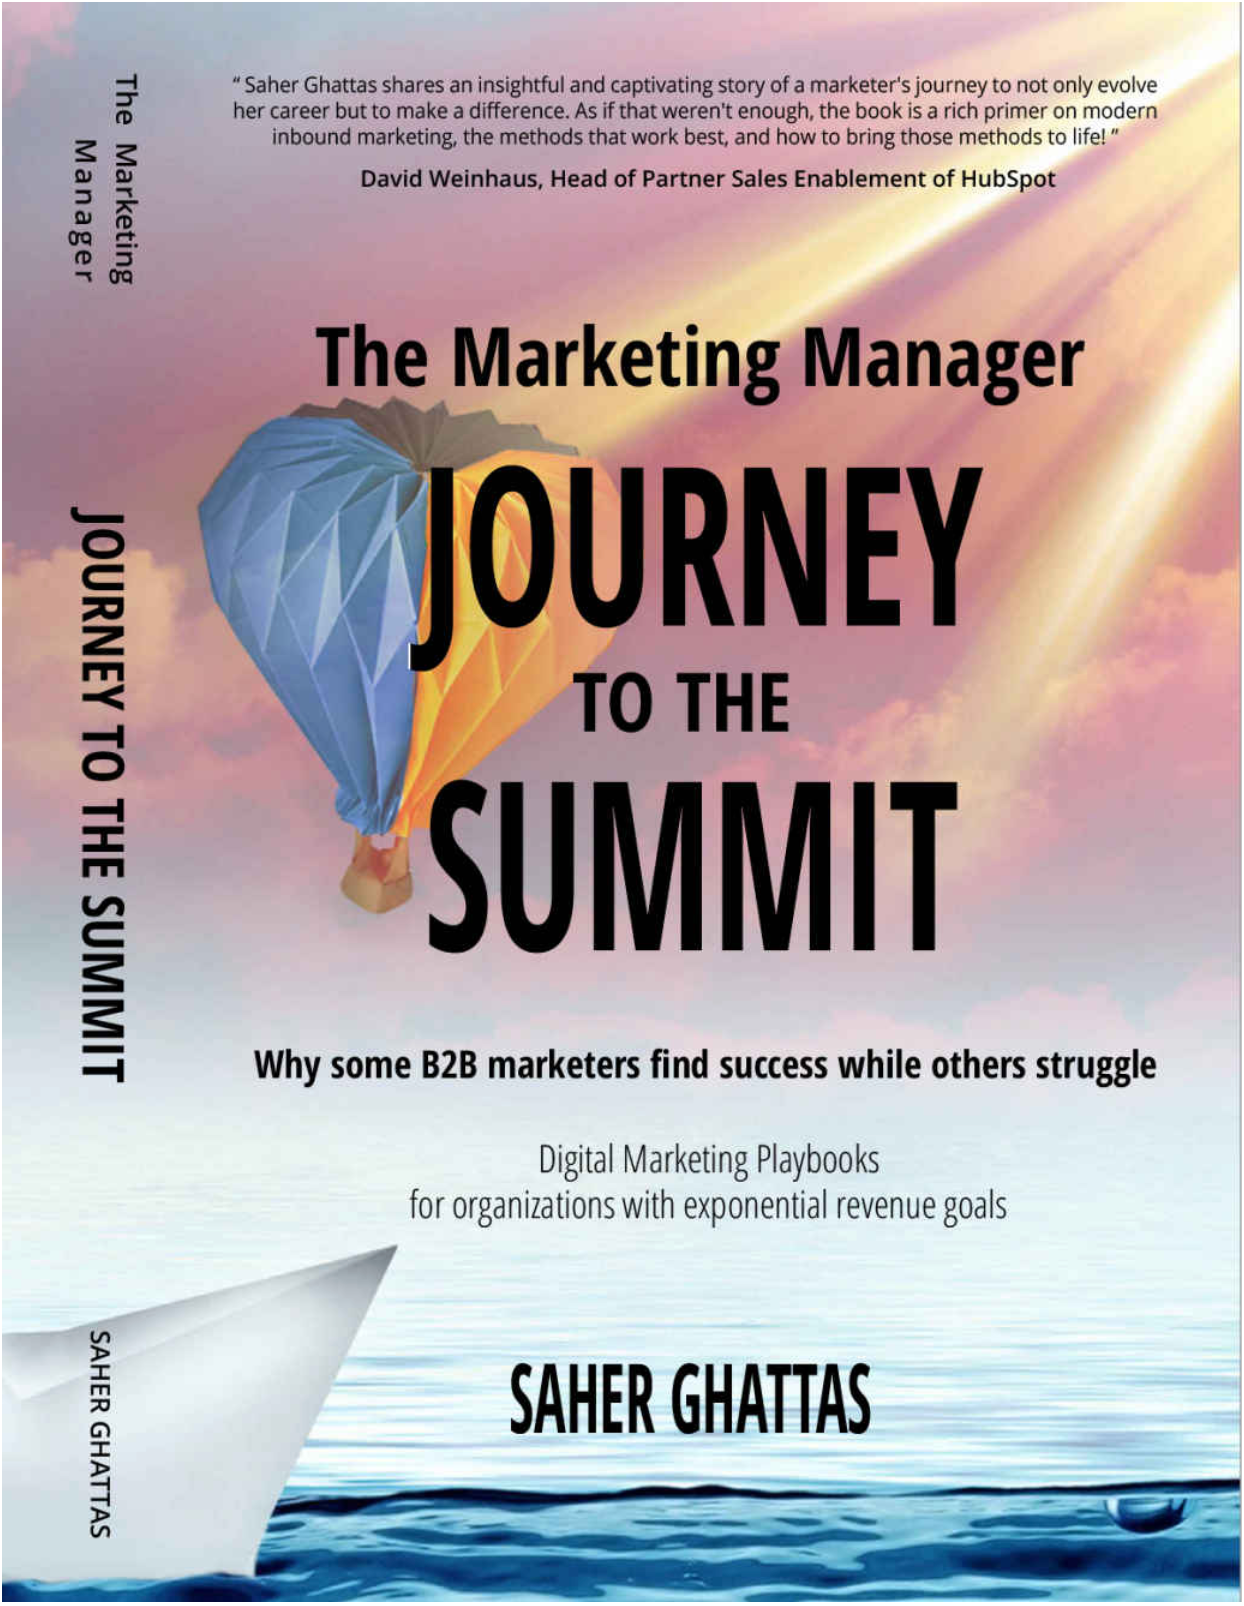 Journey to the Summit is a book on B2B Marketing